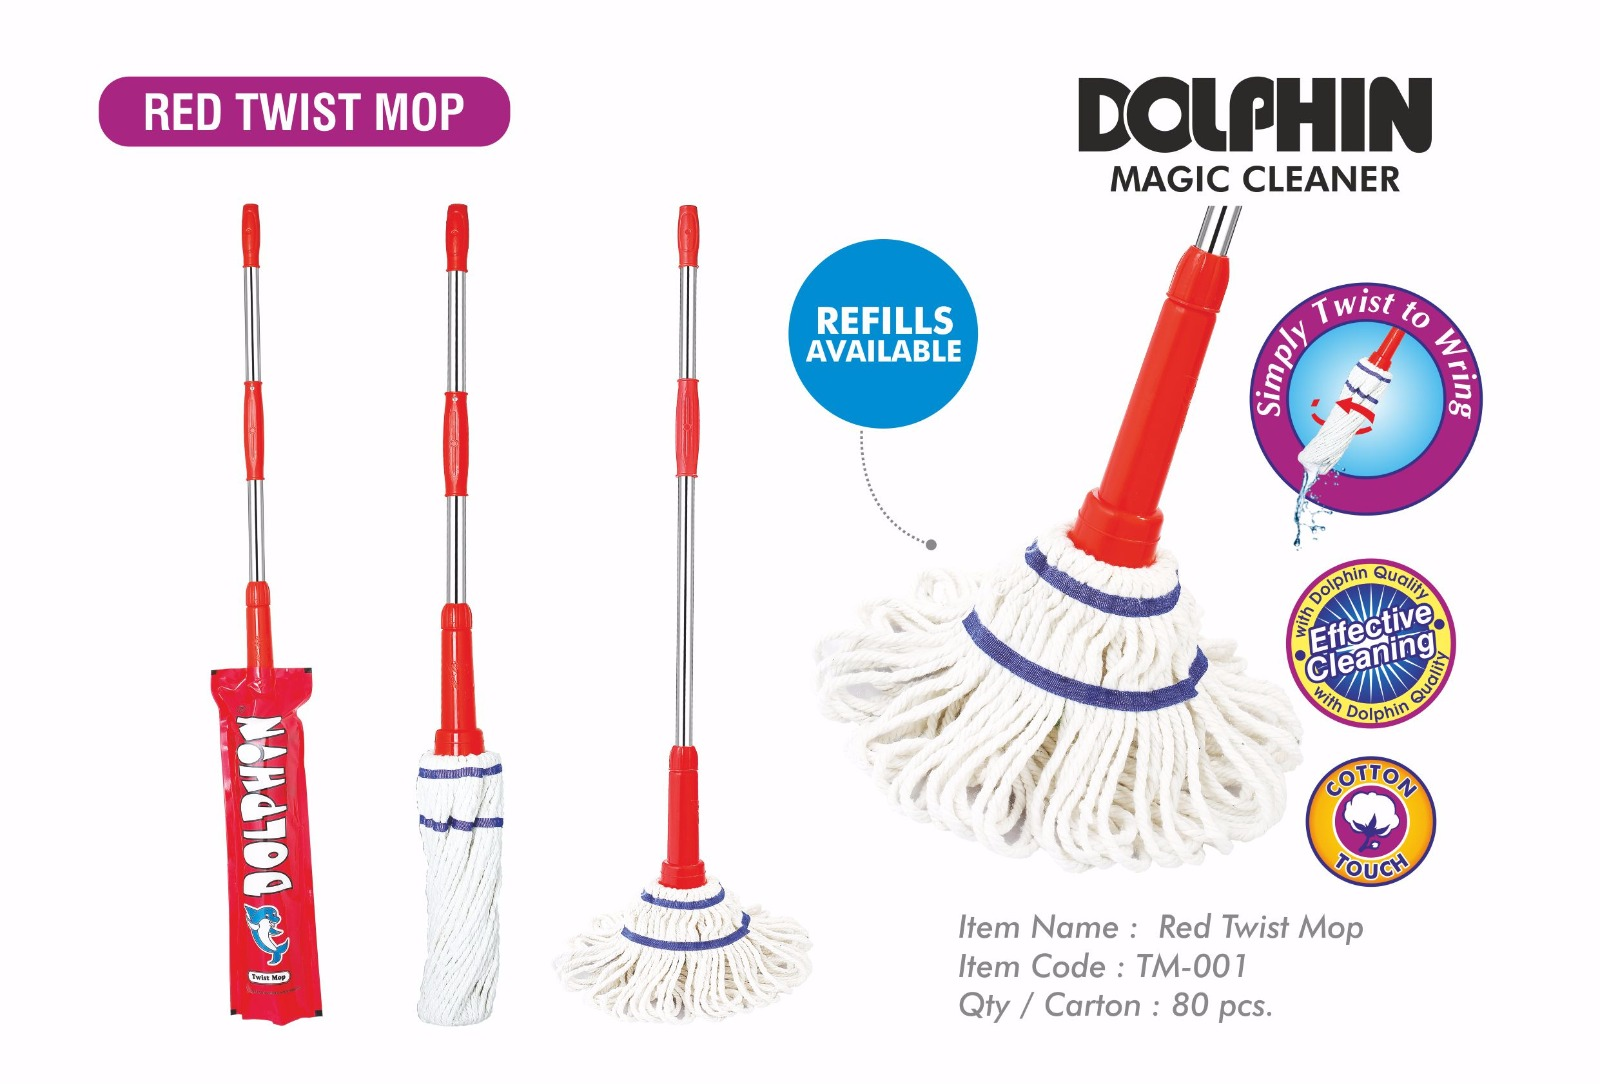 Red twist mop TM-001